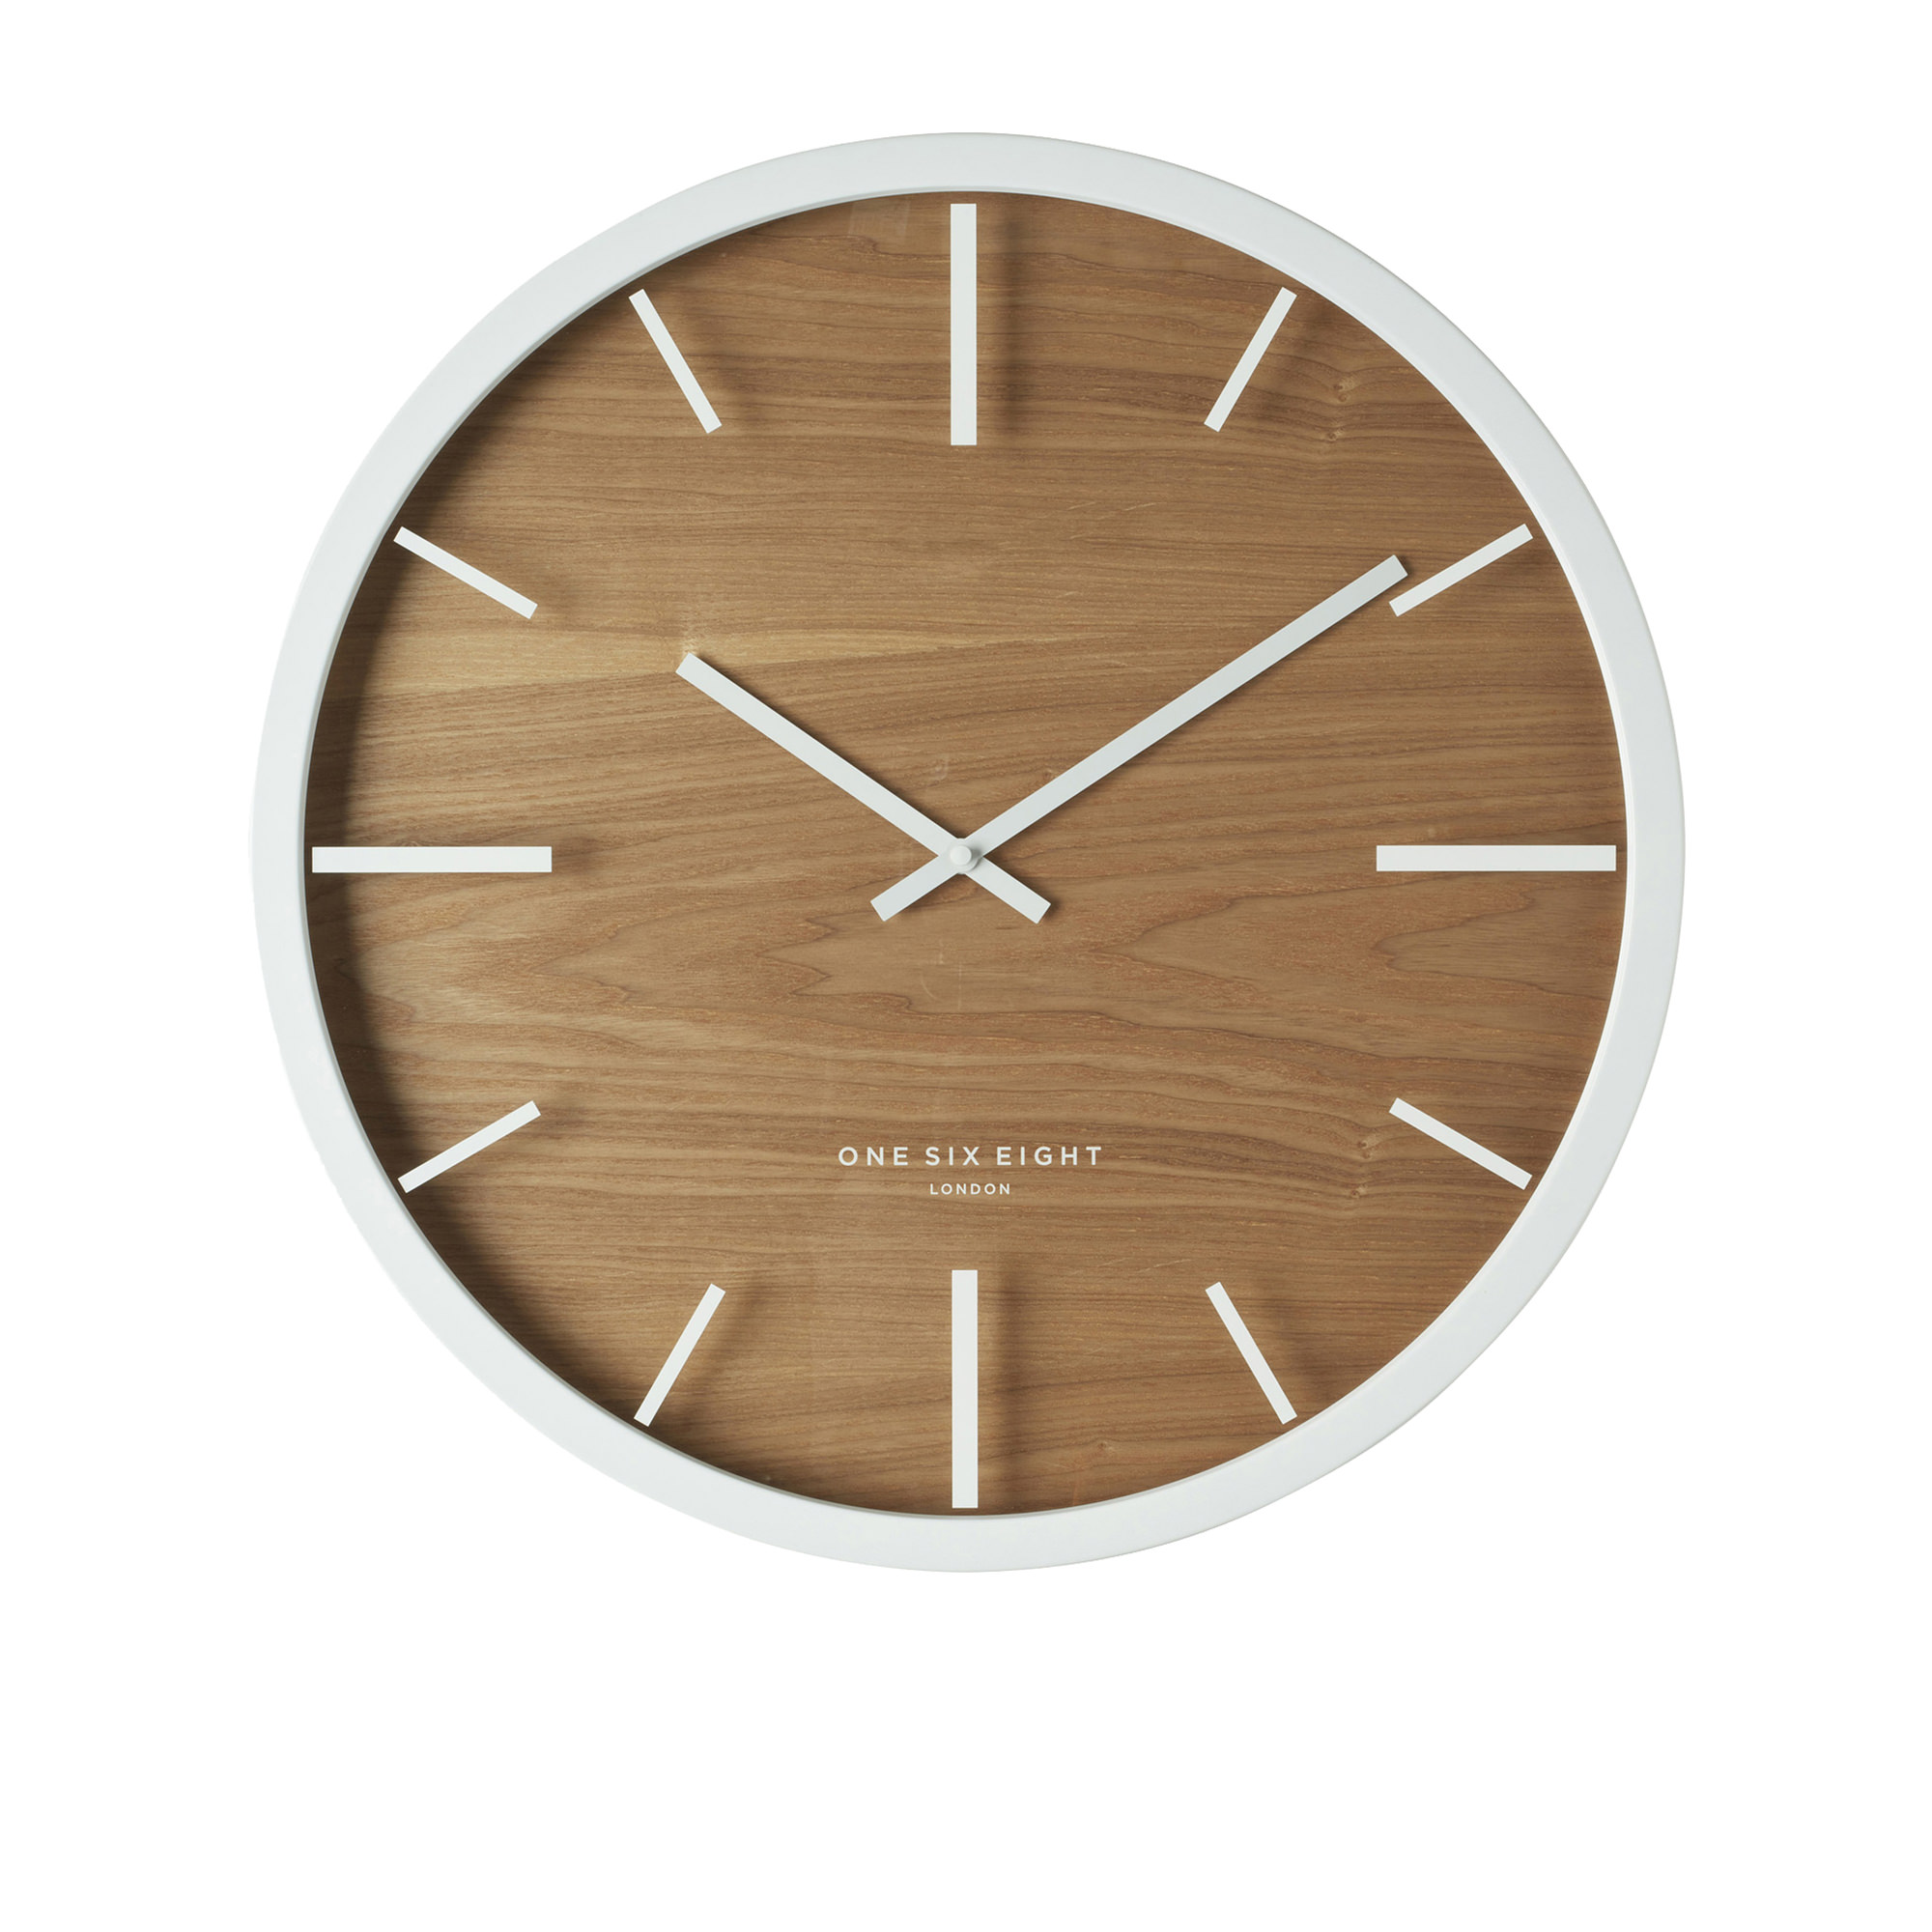 One Six Eight London Willow Silent Wall Clock 50cm White